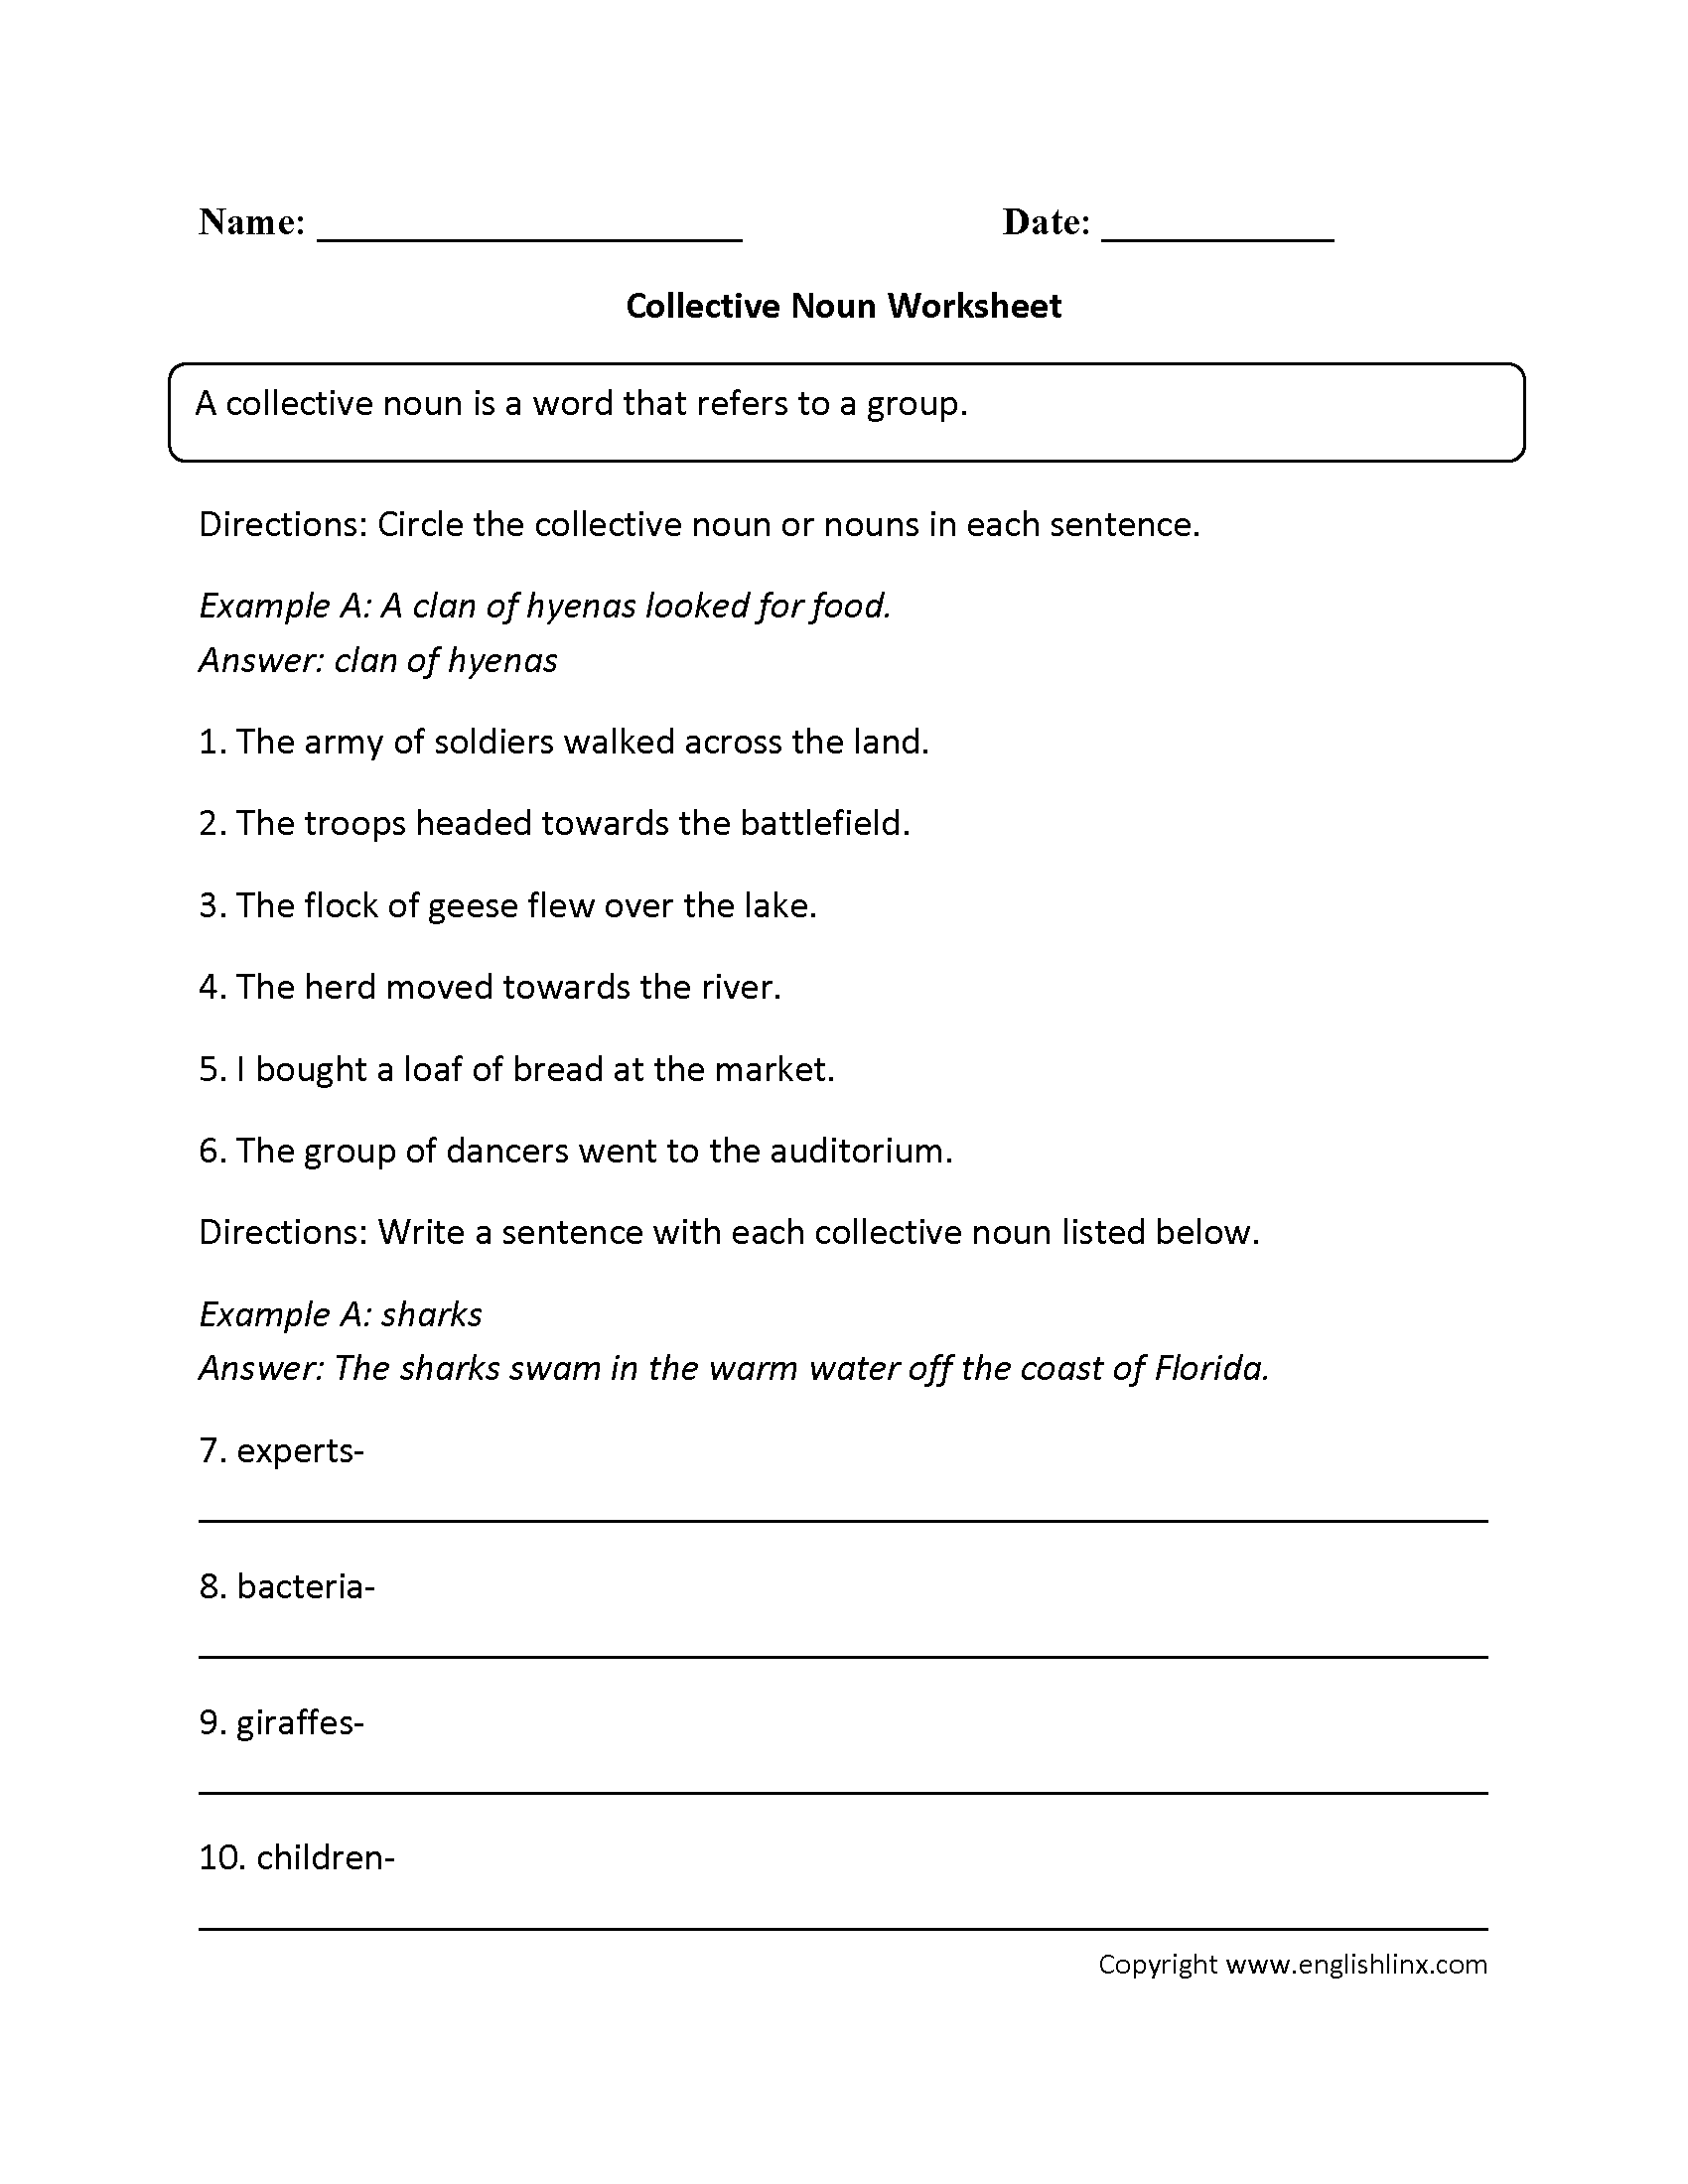 FillIn Collective Nouns Worksheet Writing – Army Body Fat Worksheet